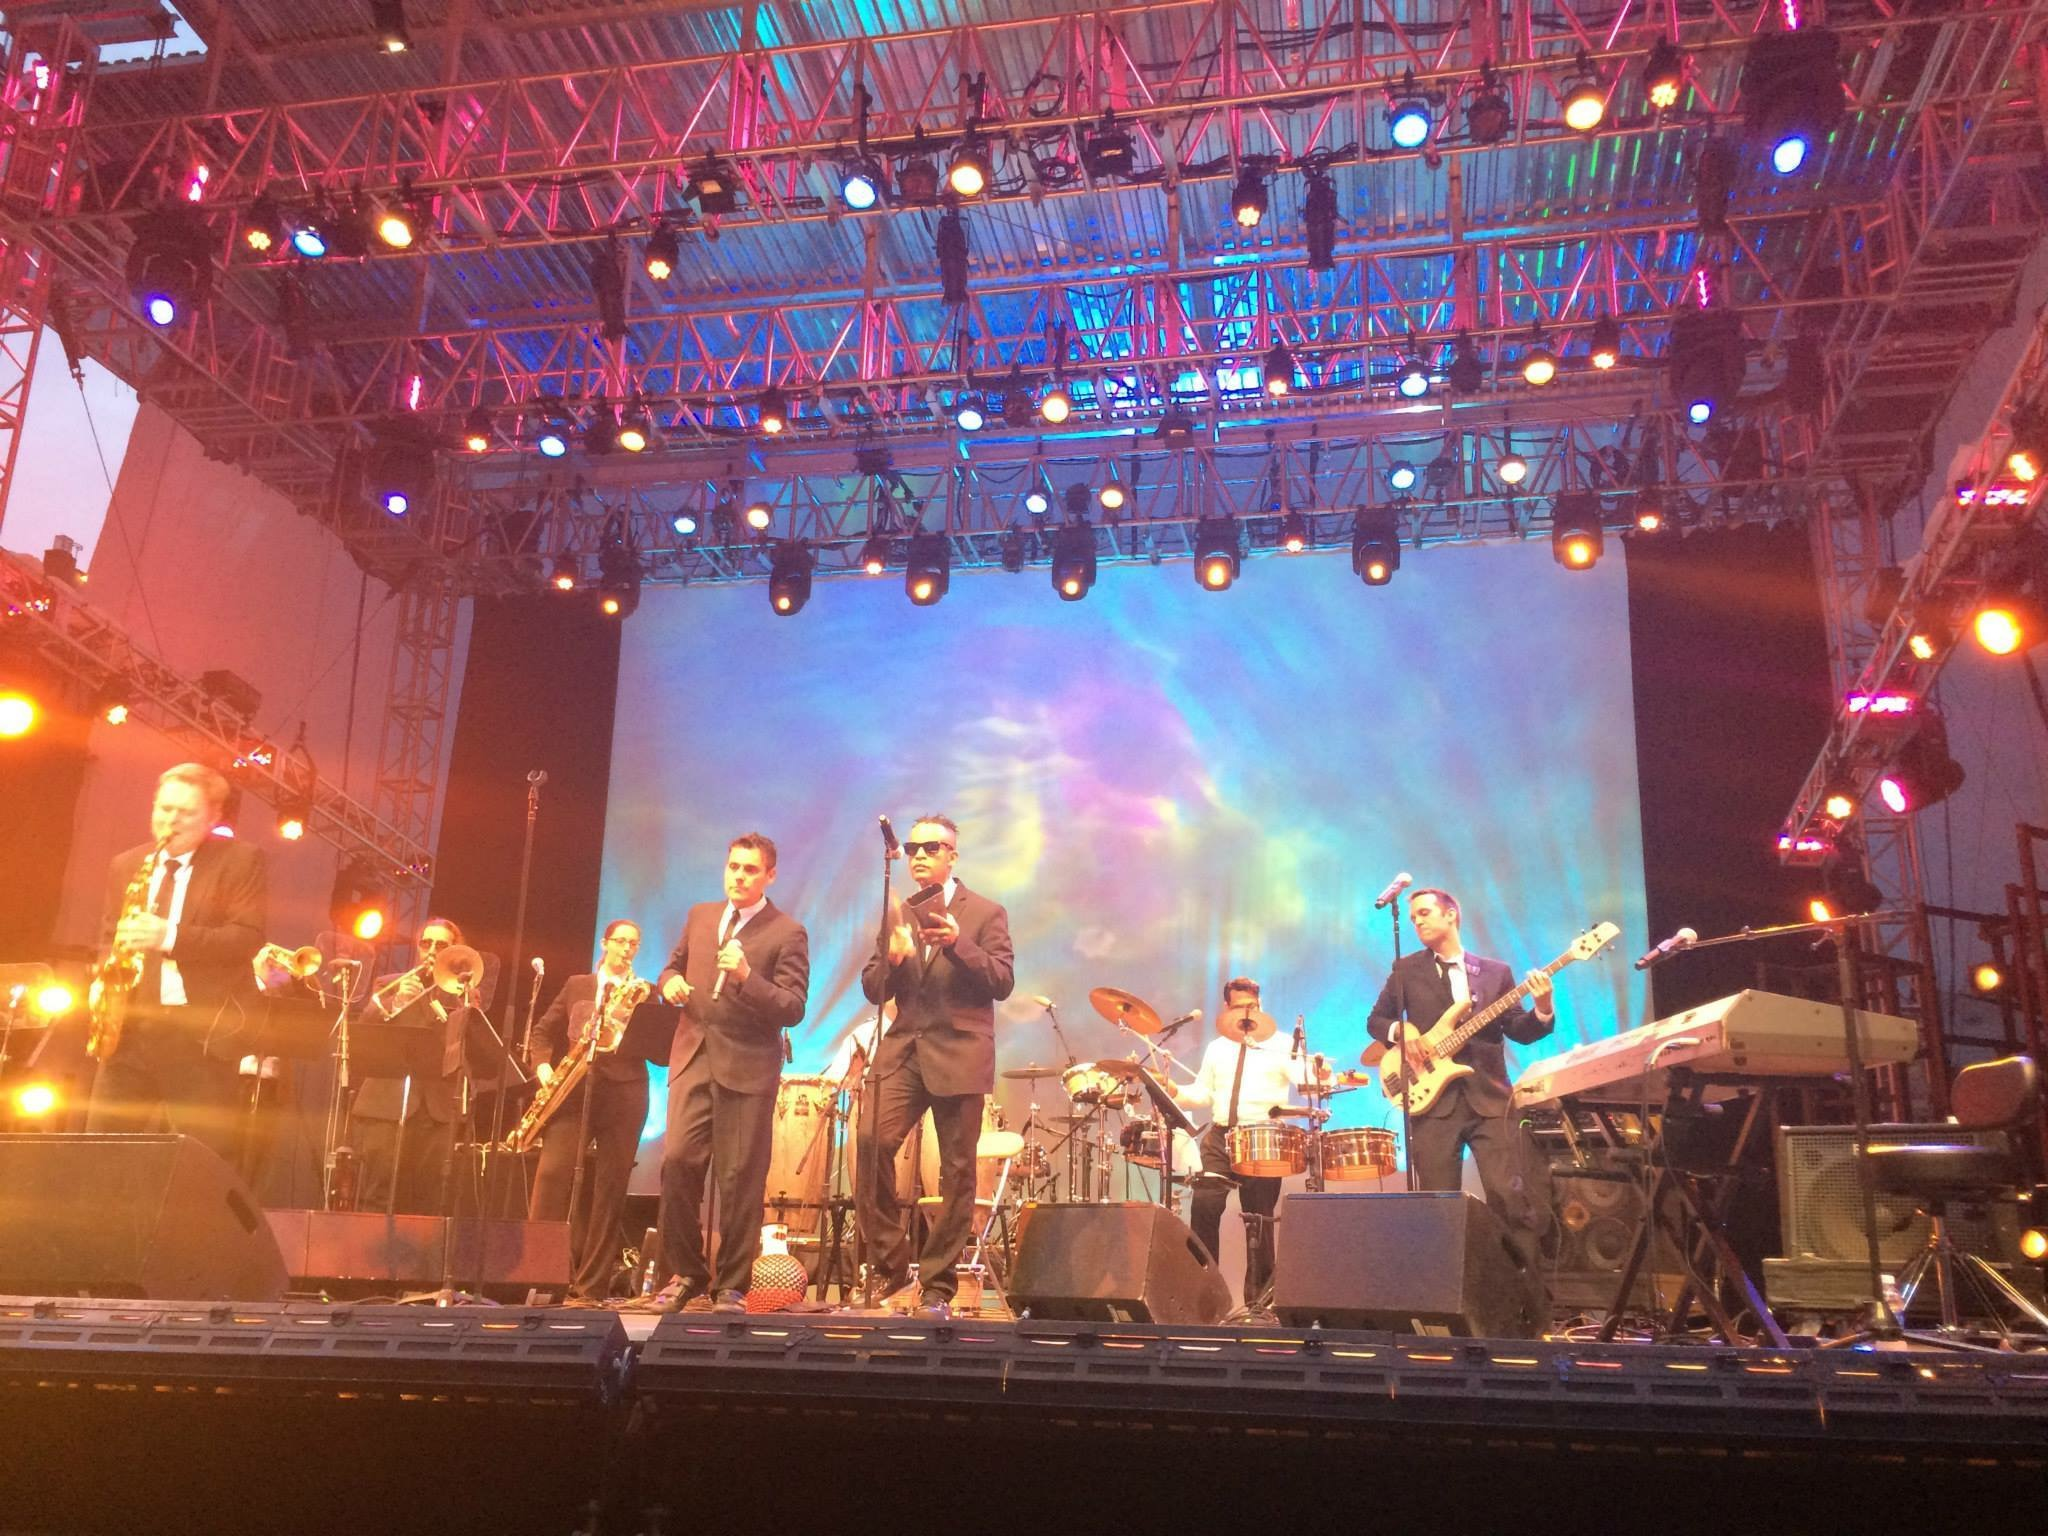 Performing with Ray Lugo and the Boogaloo Destroyers at Lincoln Center.